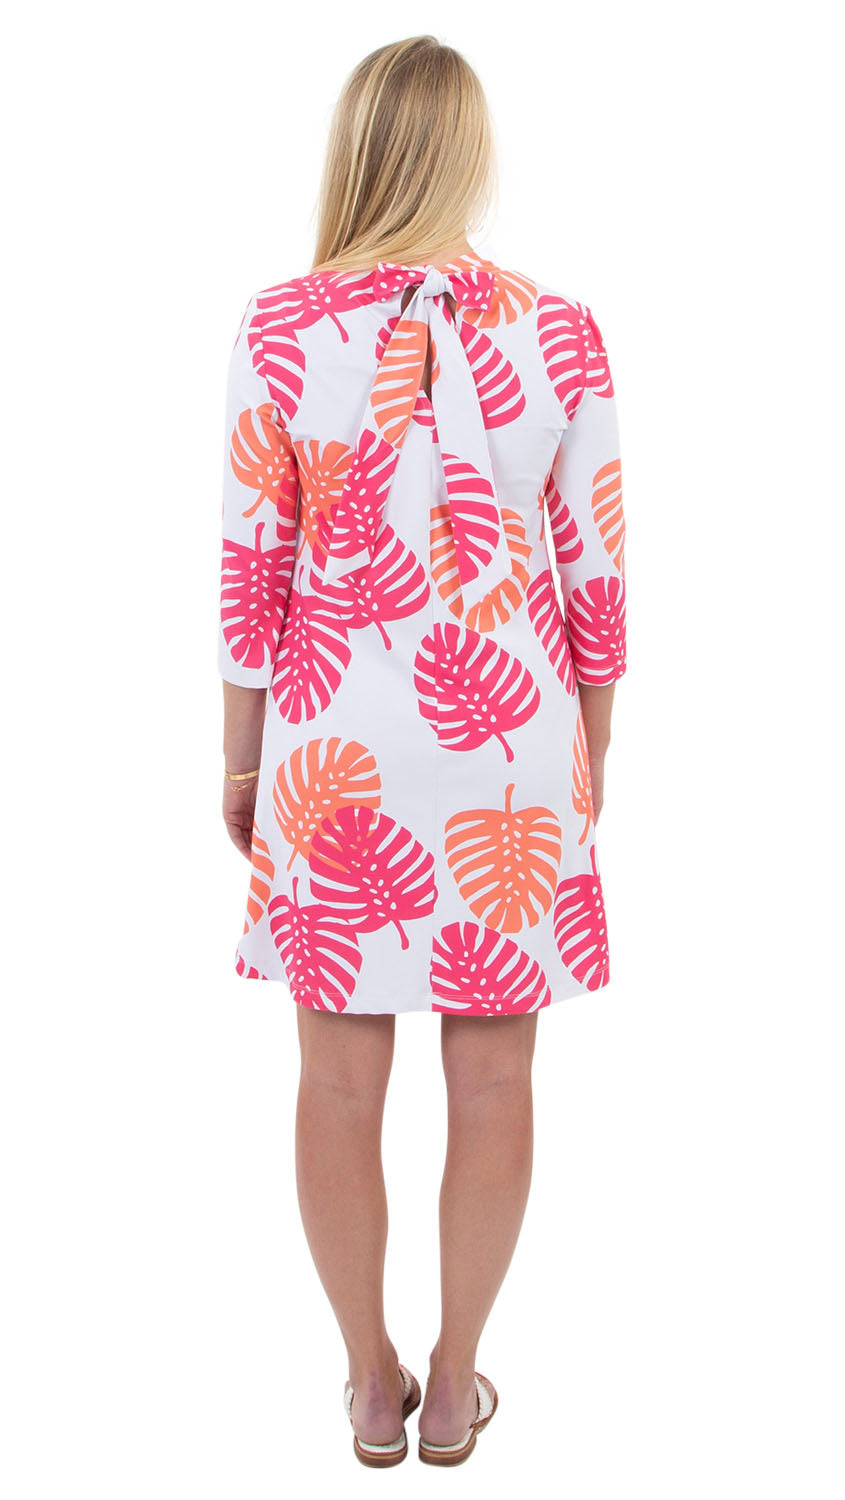 Molly Bow Back 3/4 Sleeve - Hot Pink/Salmon Dancing Palms-SAMPLE  FINAL SALE